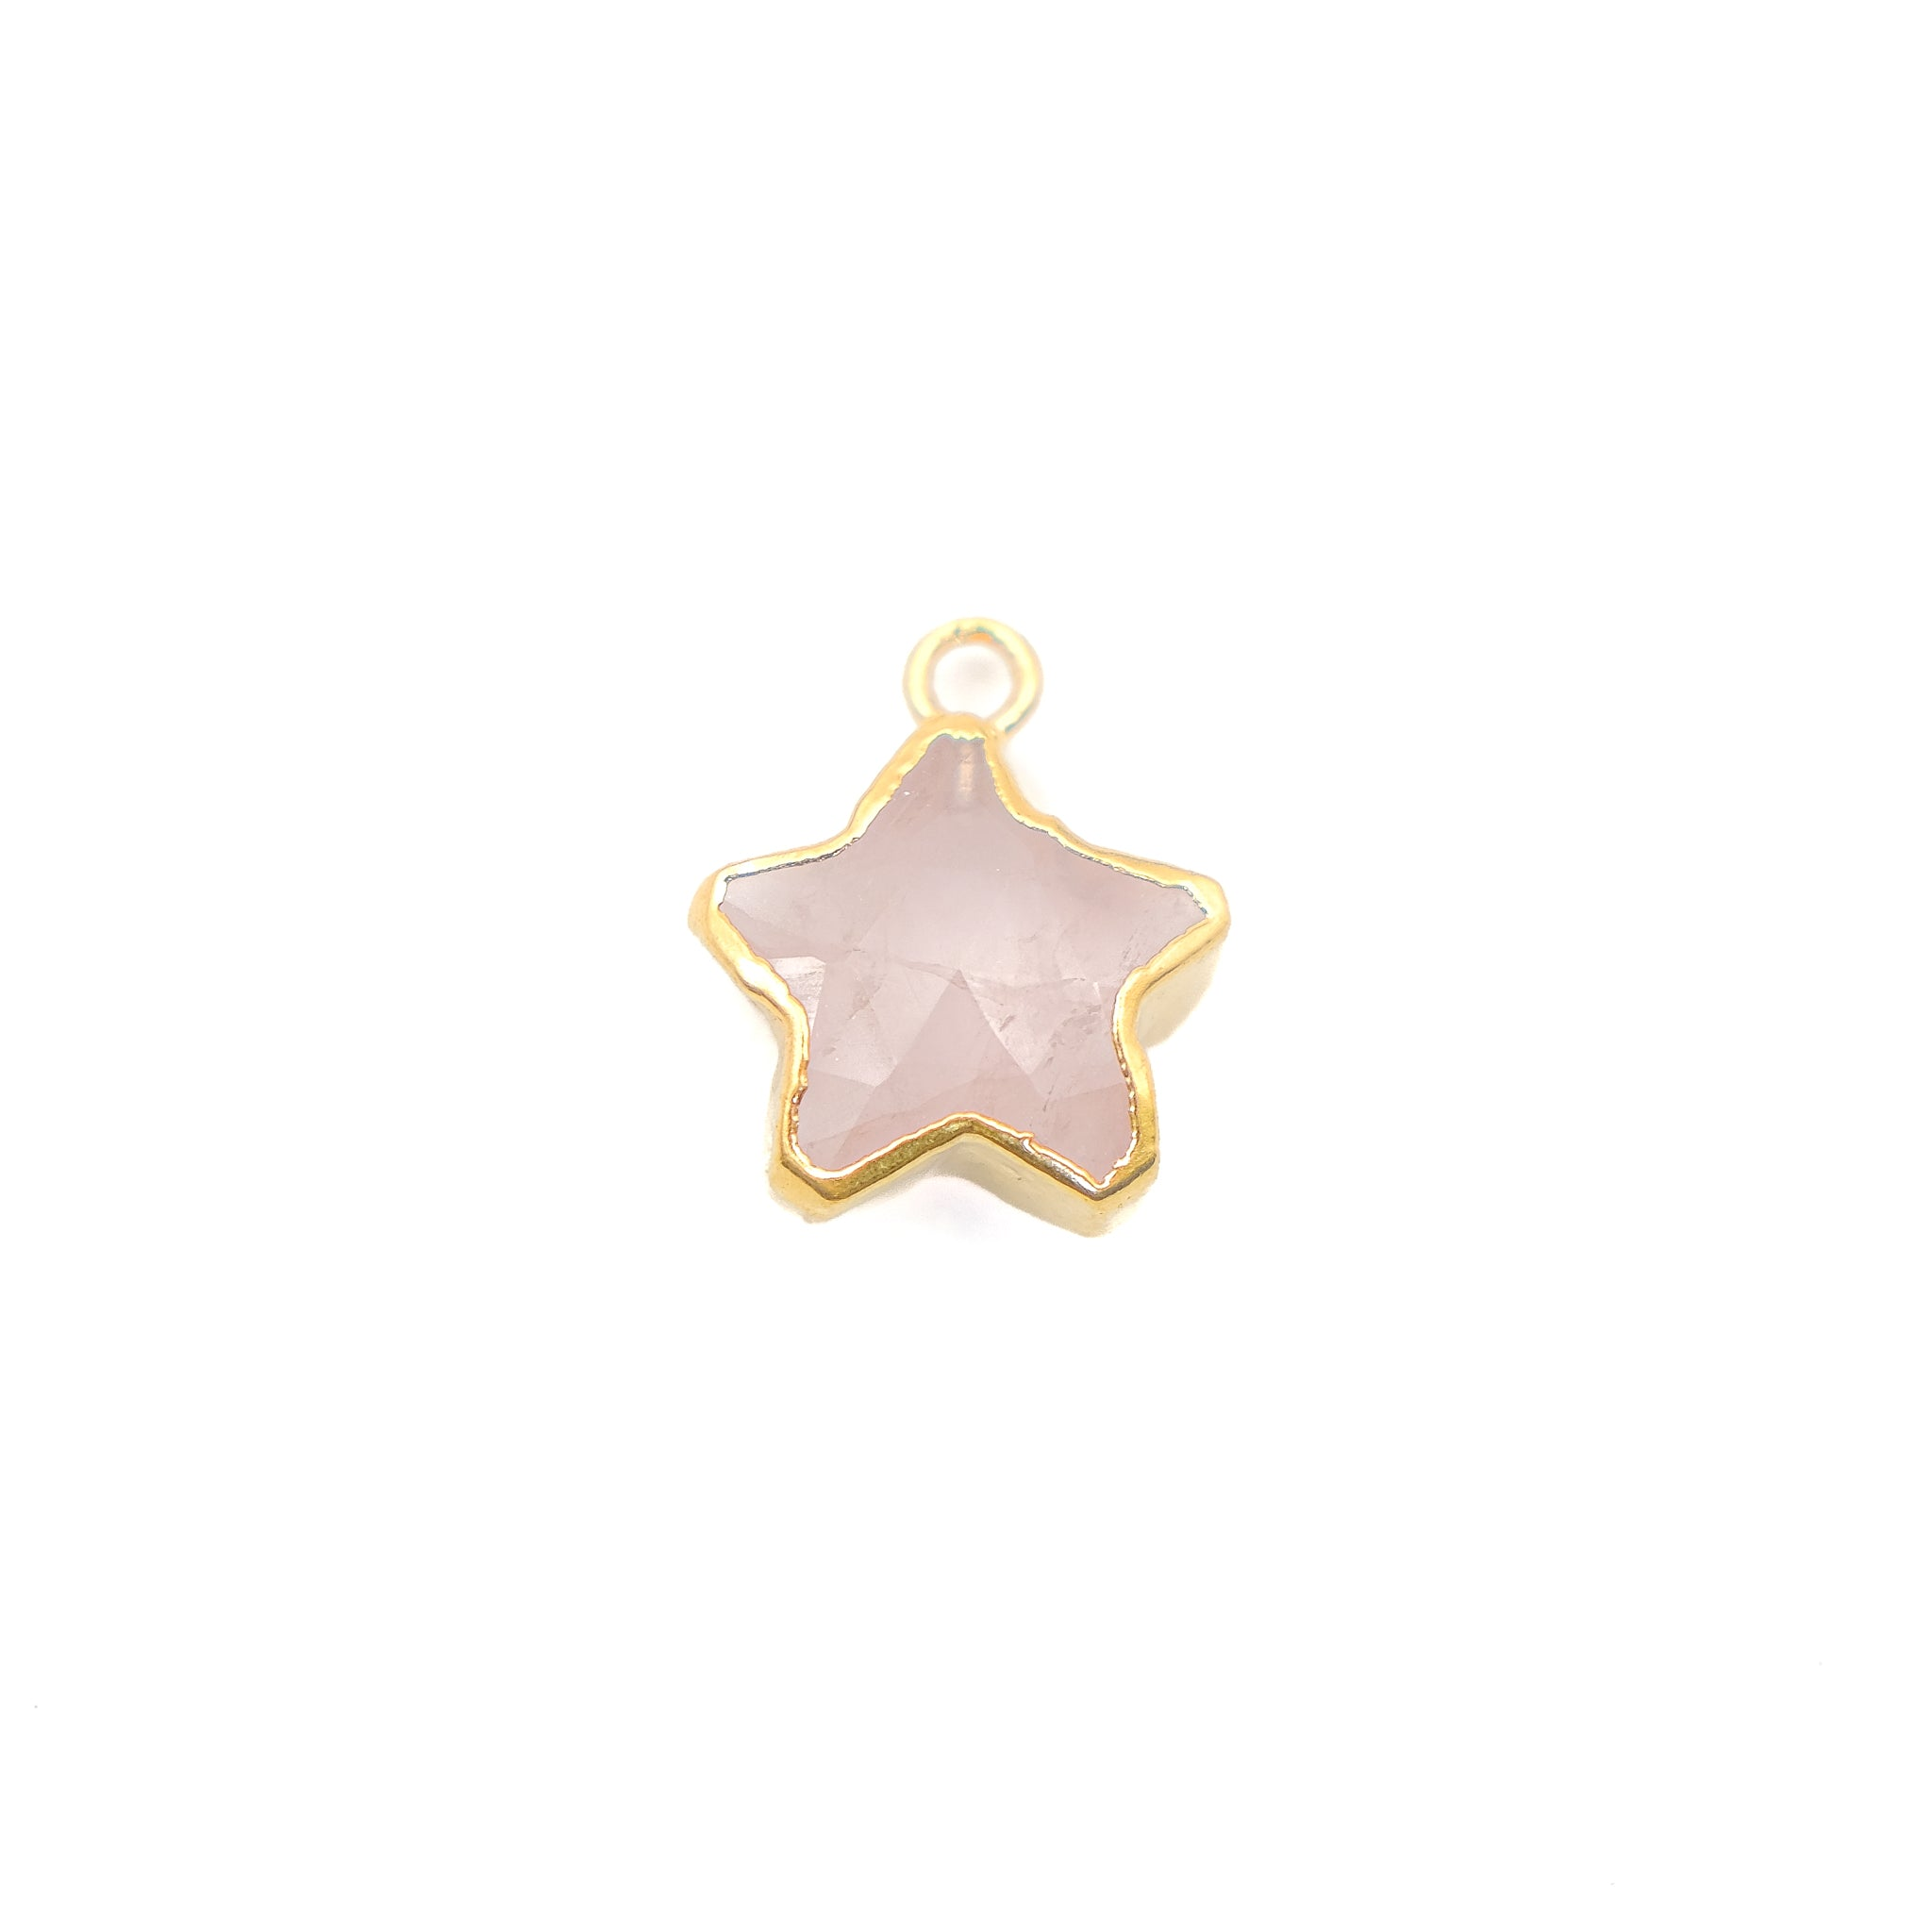 Rose Star - S-Mini Star Natural Stones 11mm - (1 count)